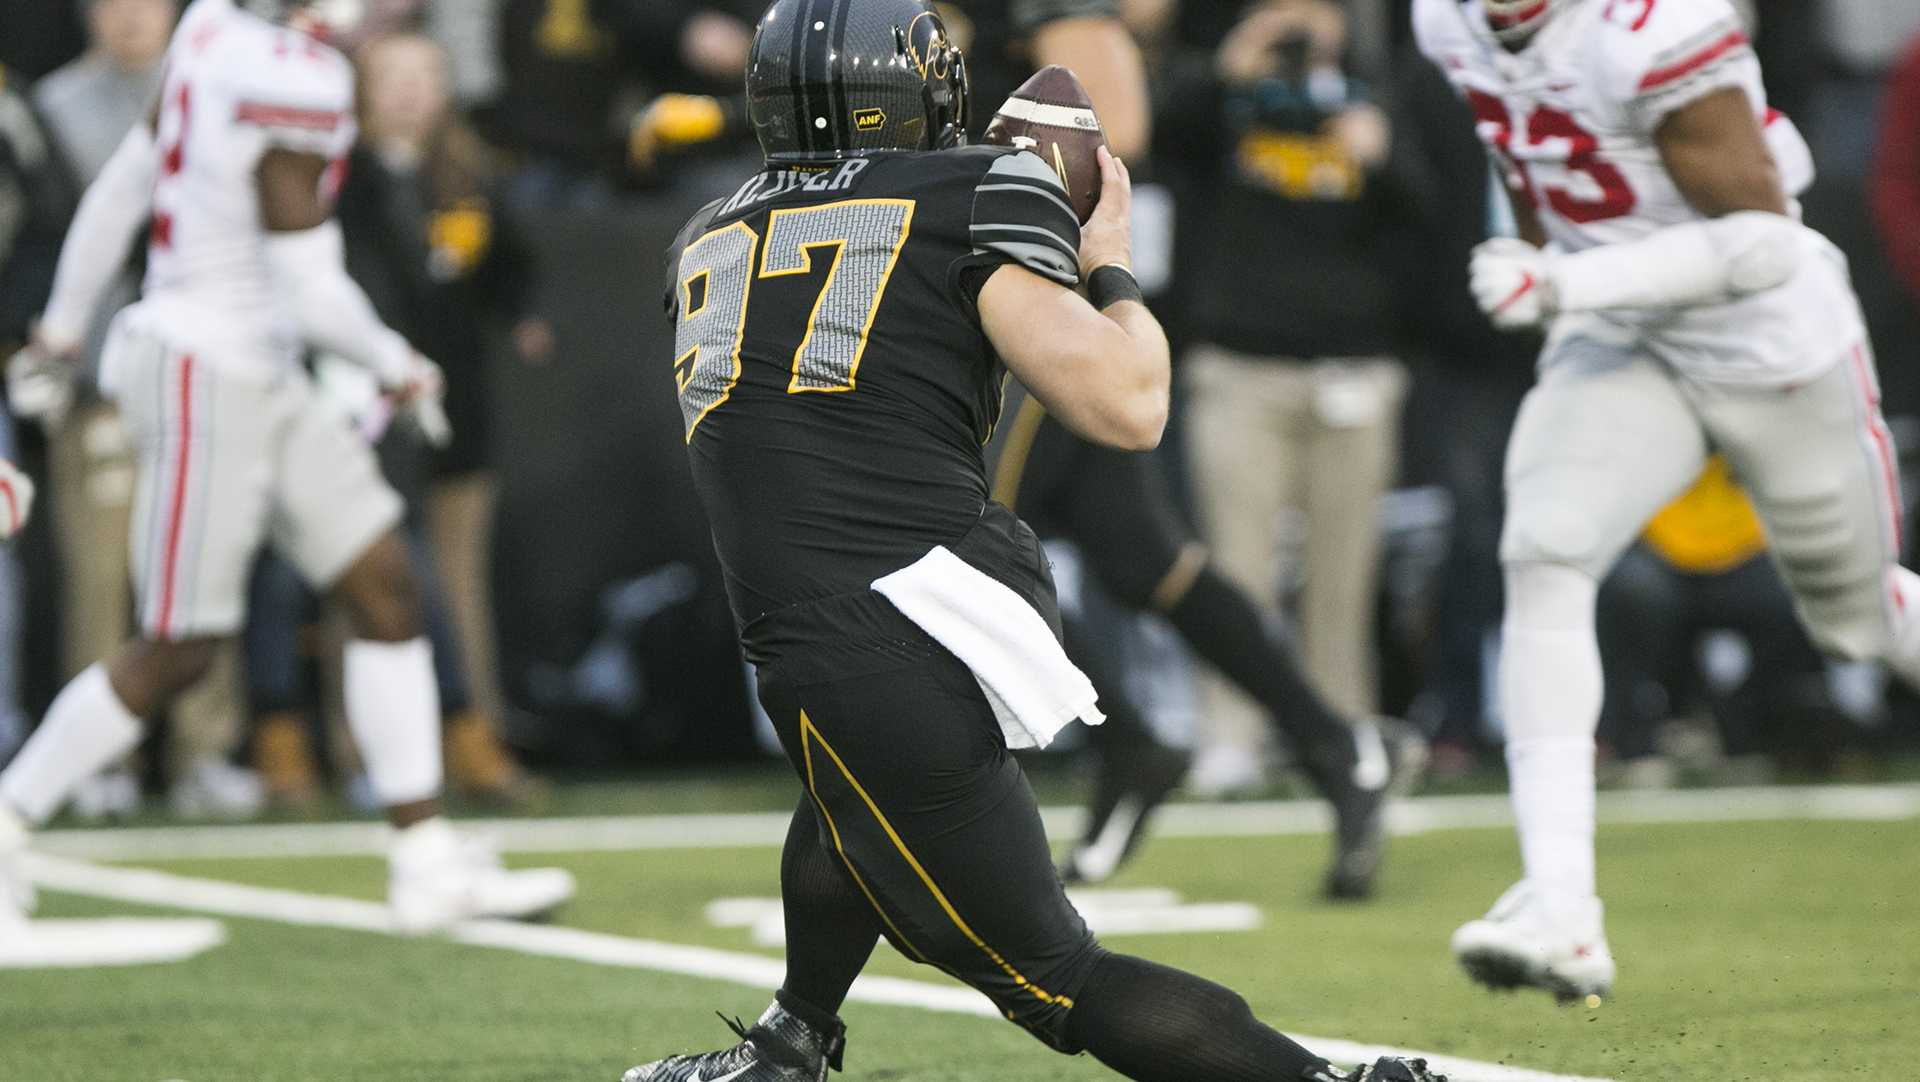 Iowa long snapper Tyler Kluver makes a reception off of a trick play on fourth down during the Iowa/Ohio State football game in Kinnick Stadium on Saturday, Nov. 4, 2017. The Hawkeyes defeated the Buckeyes in a storming fashion, 55-24. (Joseph Cress/The Daily Iowan)